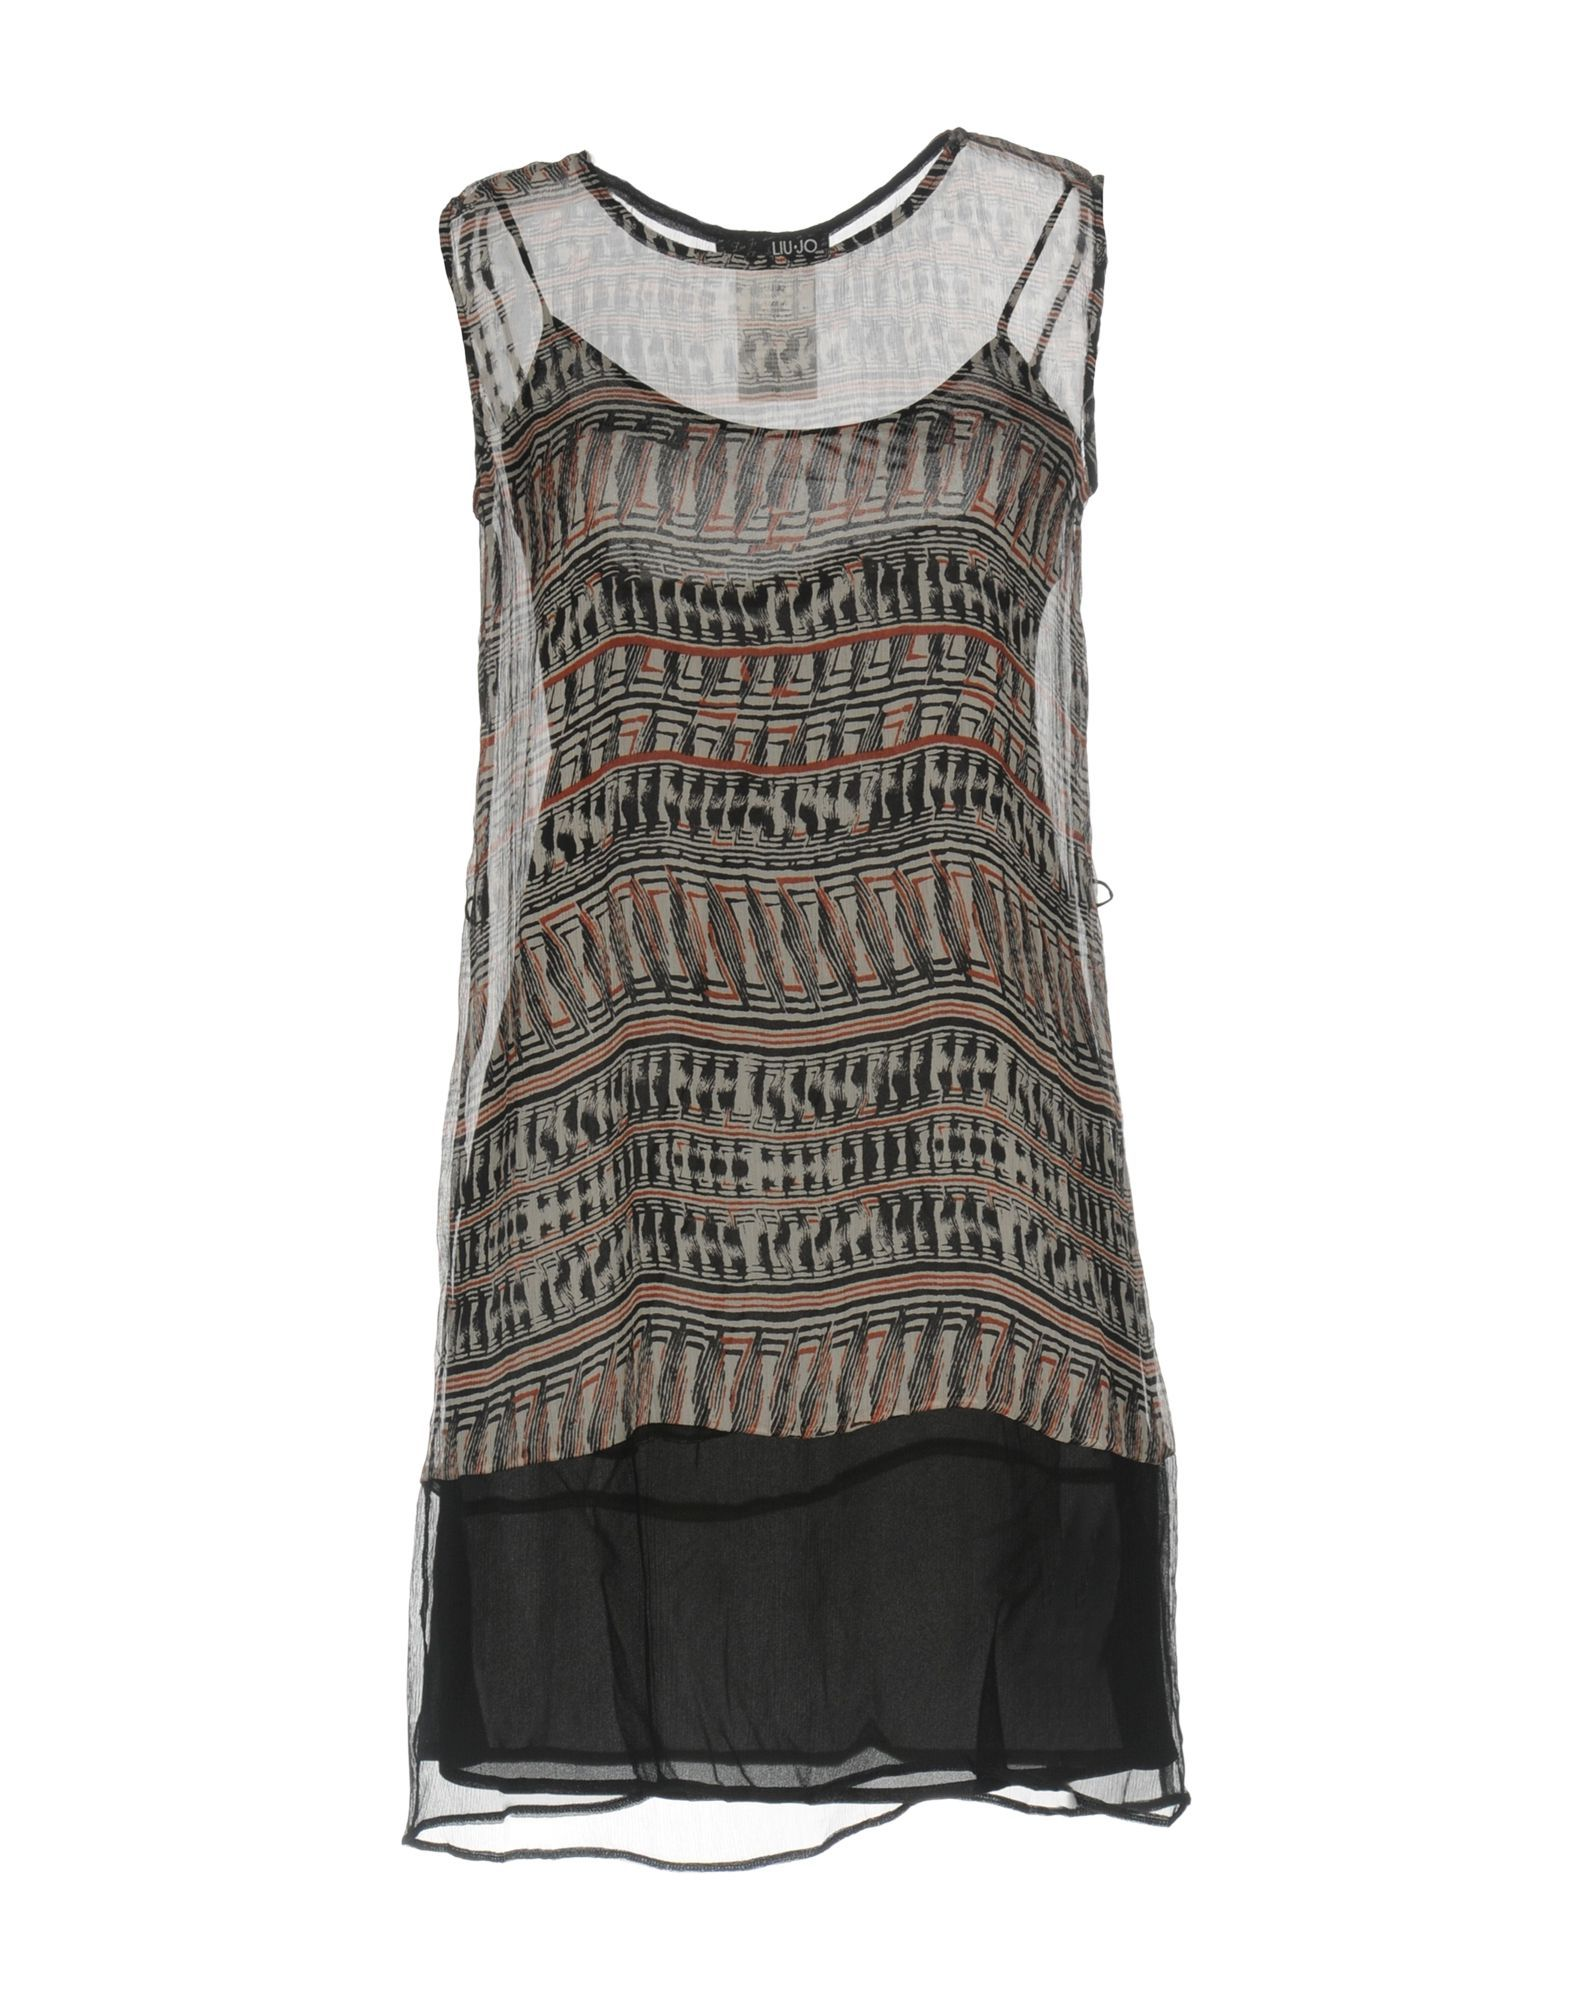 Liu Jo Black Silk Chiffon Sleeveless Dress